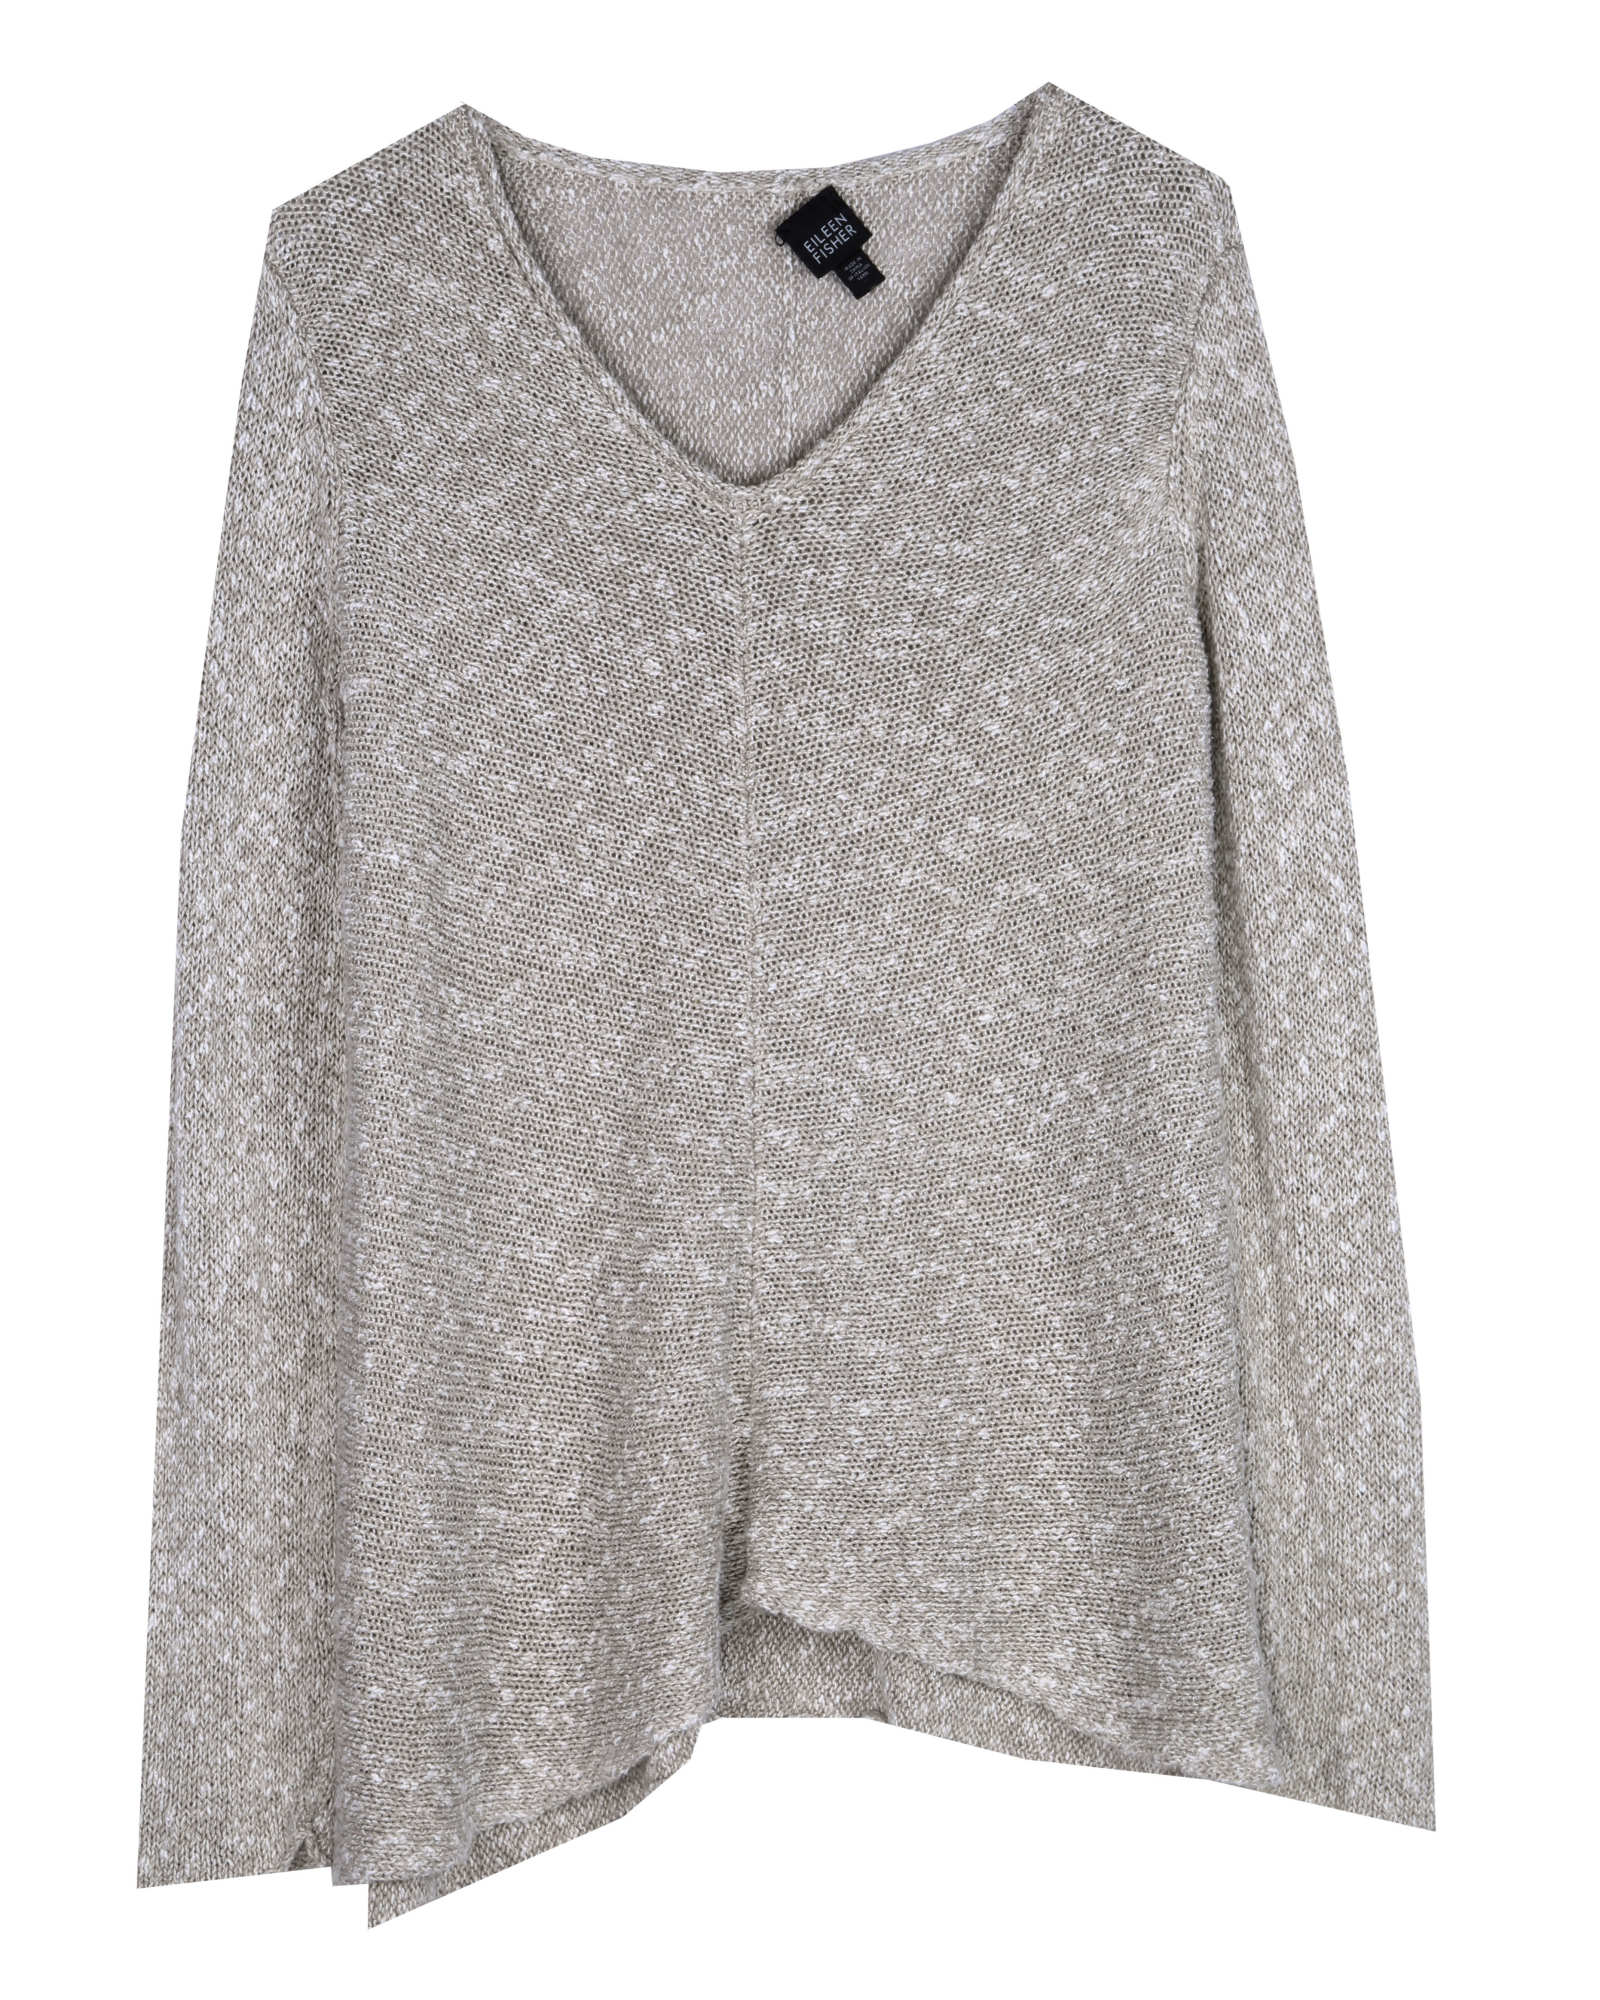 Linen Cotton Knit Pullover